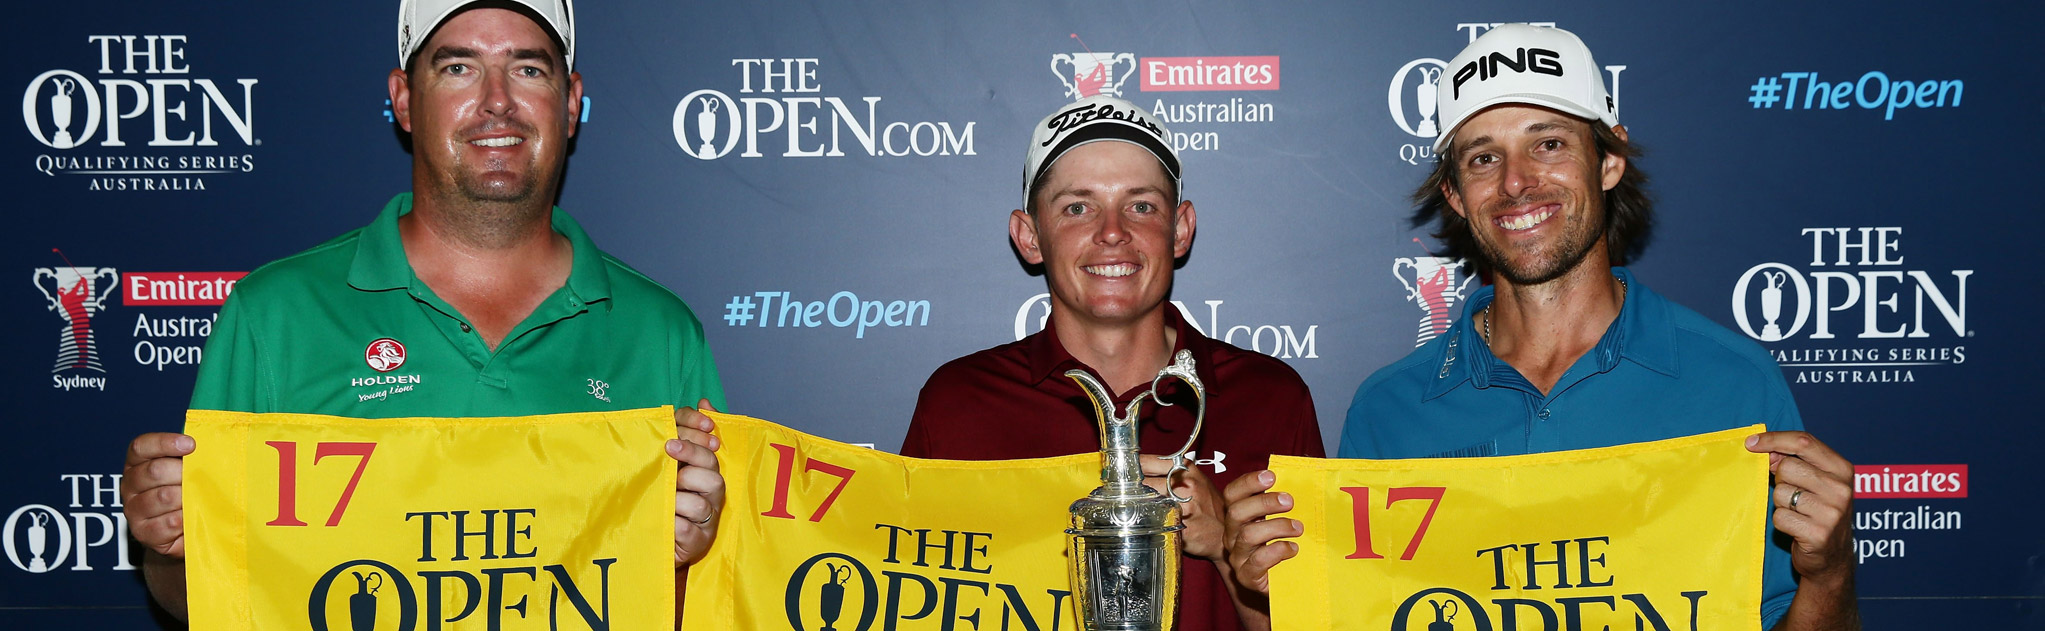 ashley-hall-cameron-smith-and-aaron-baddeley-receive-their-ticket-to-the-open